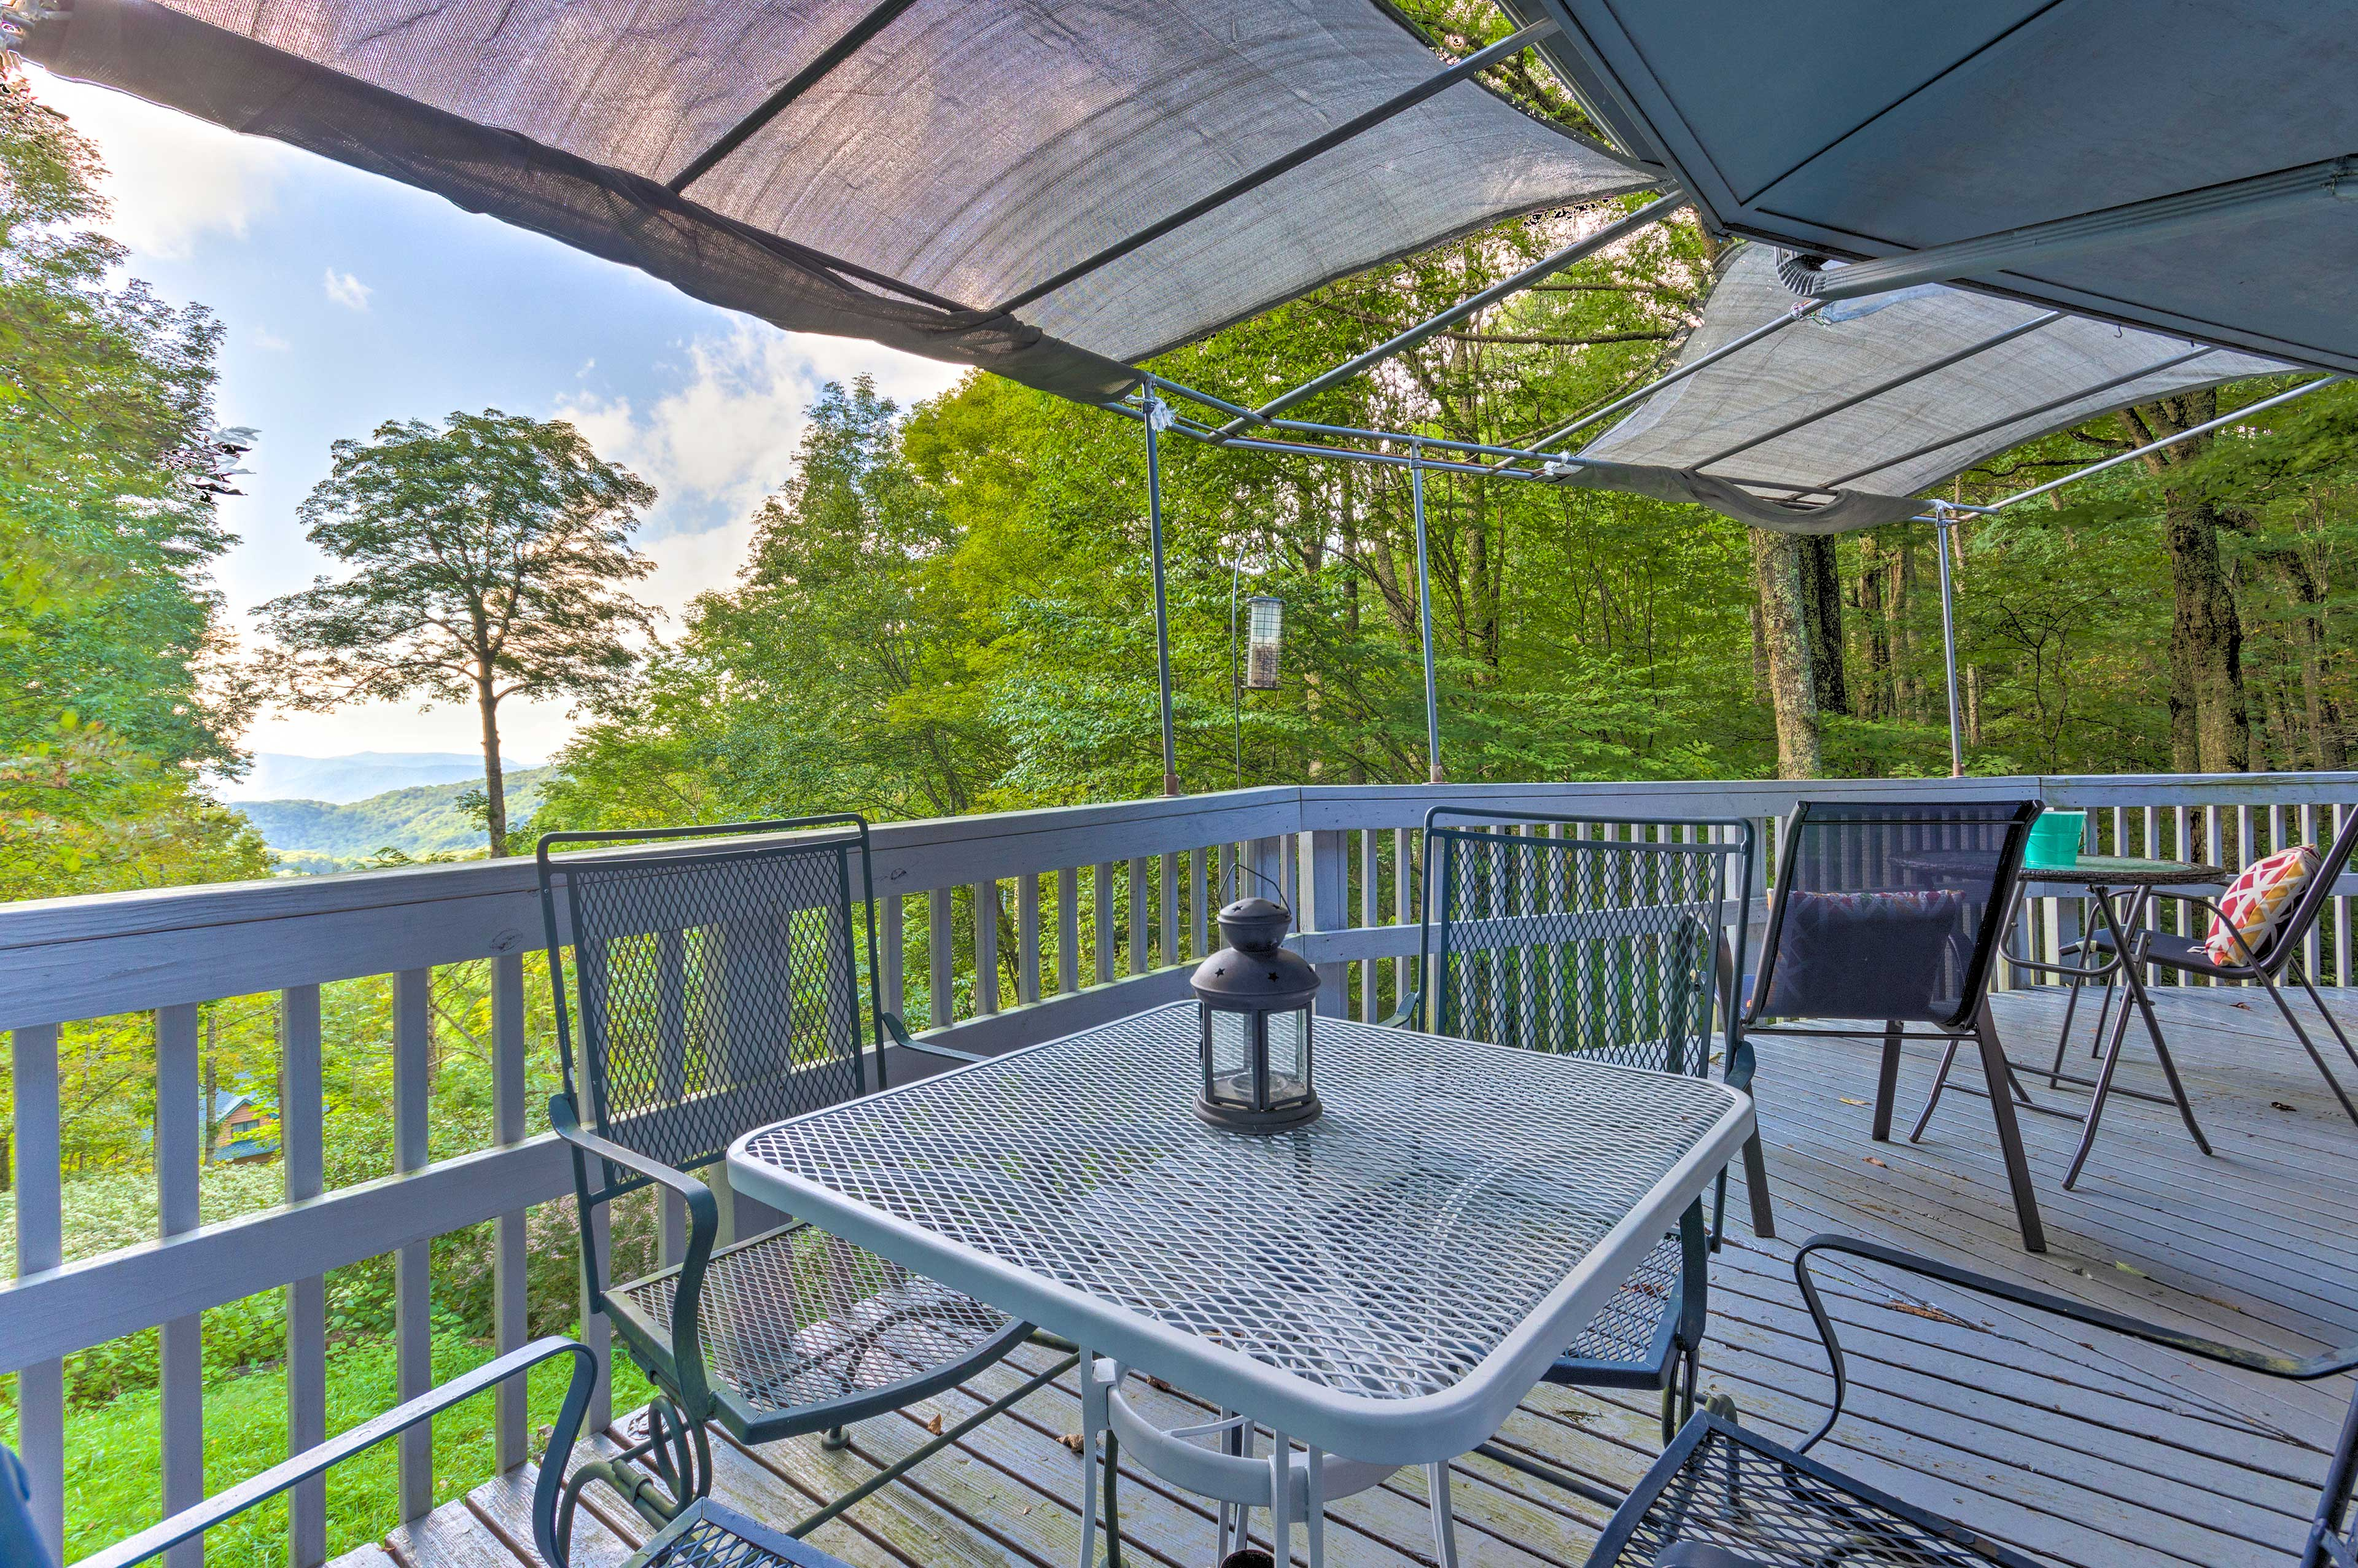 Discover the views of the North Carolina mountains from this cottage's deck.